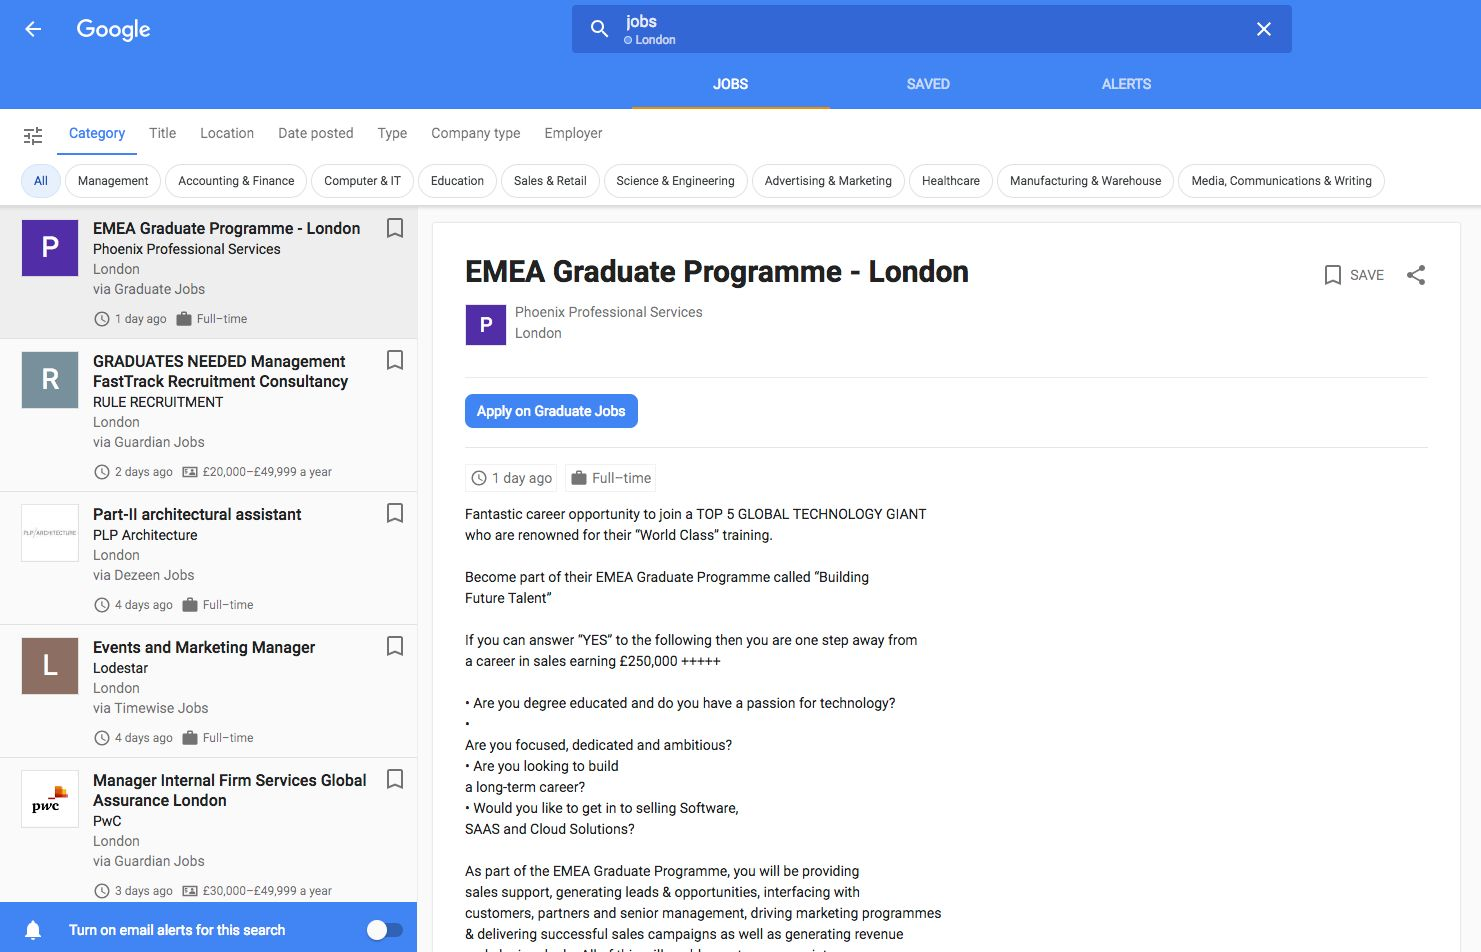 Google launches job hunting service in the UK